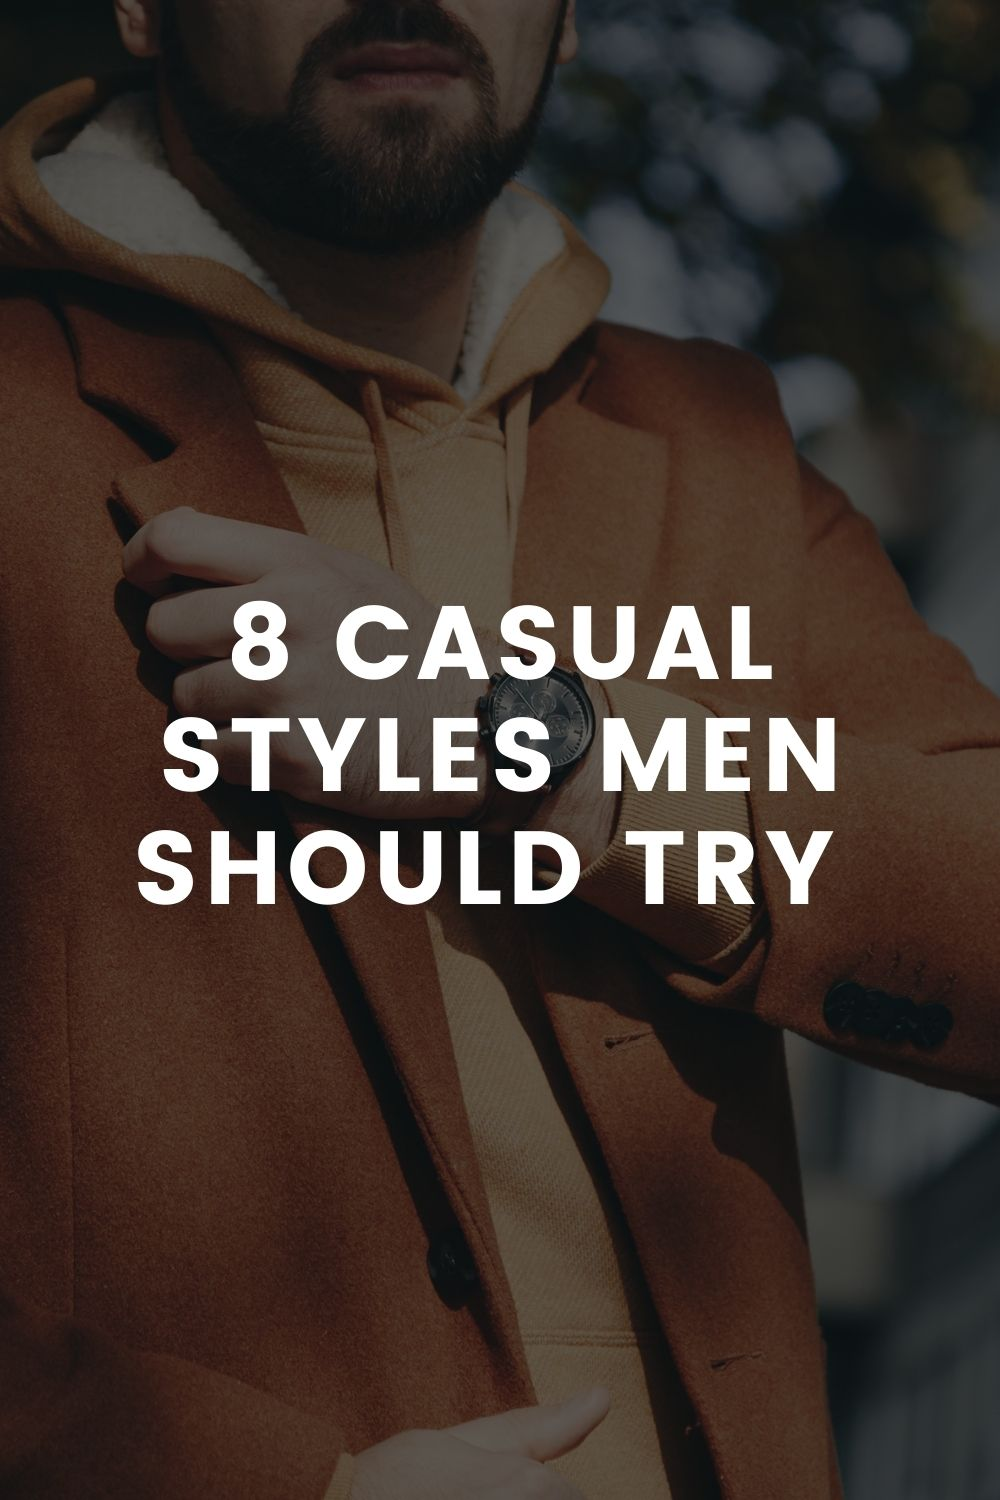 8 Casual Styles Men Should Try